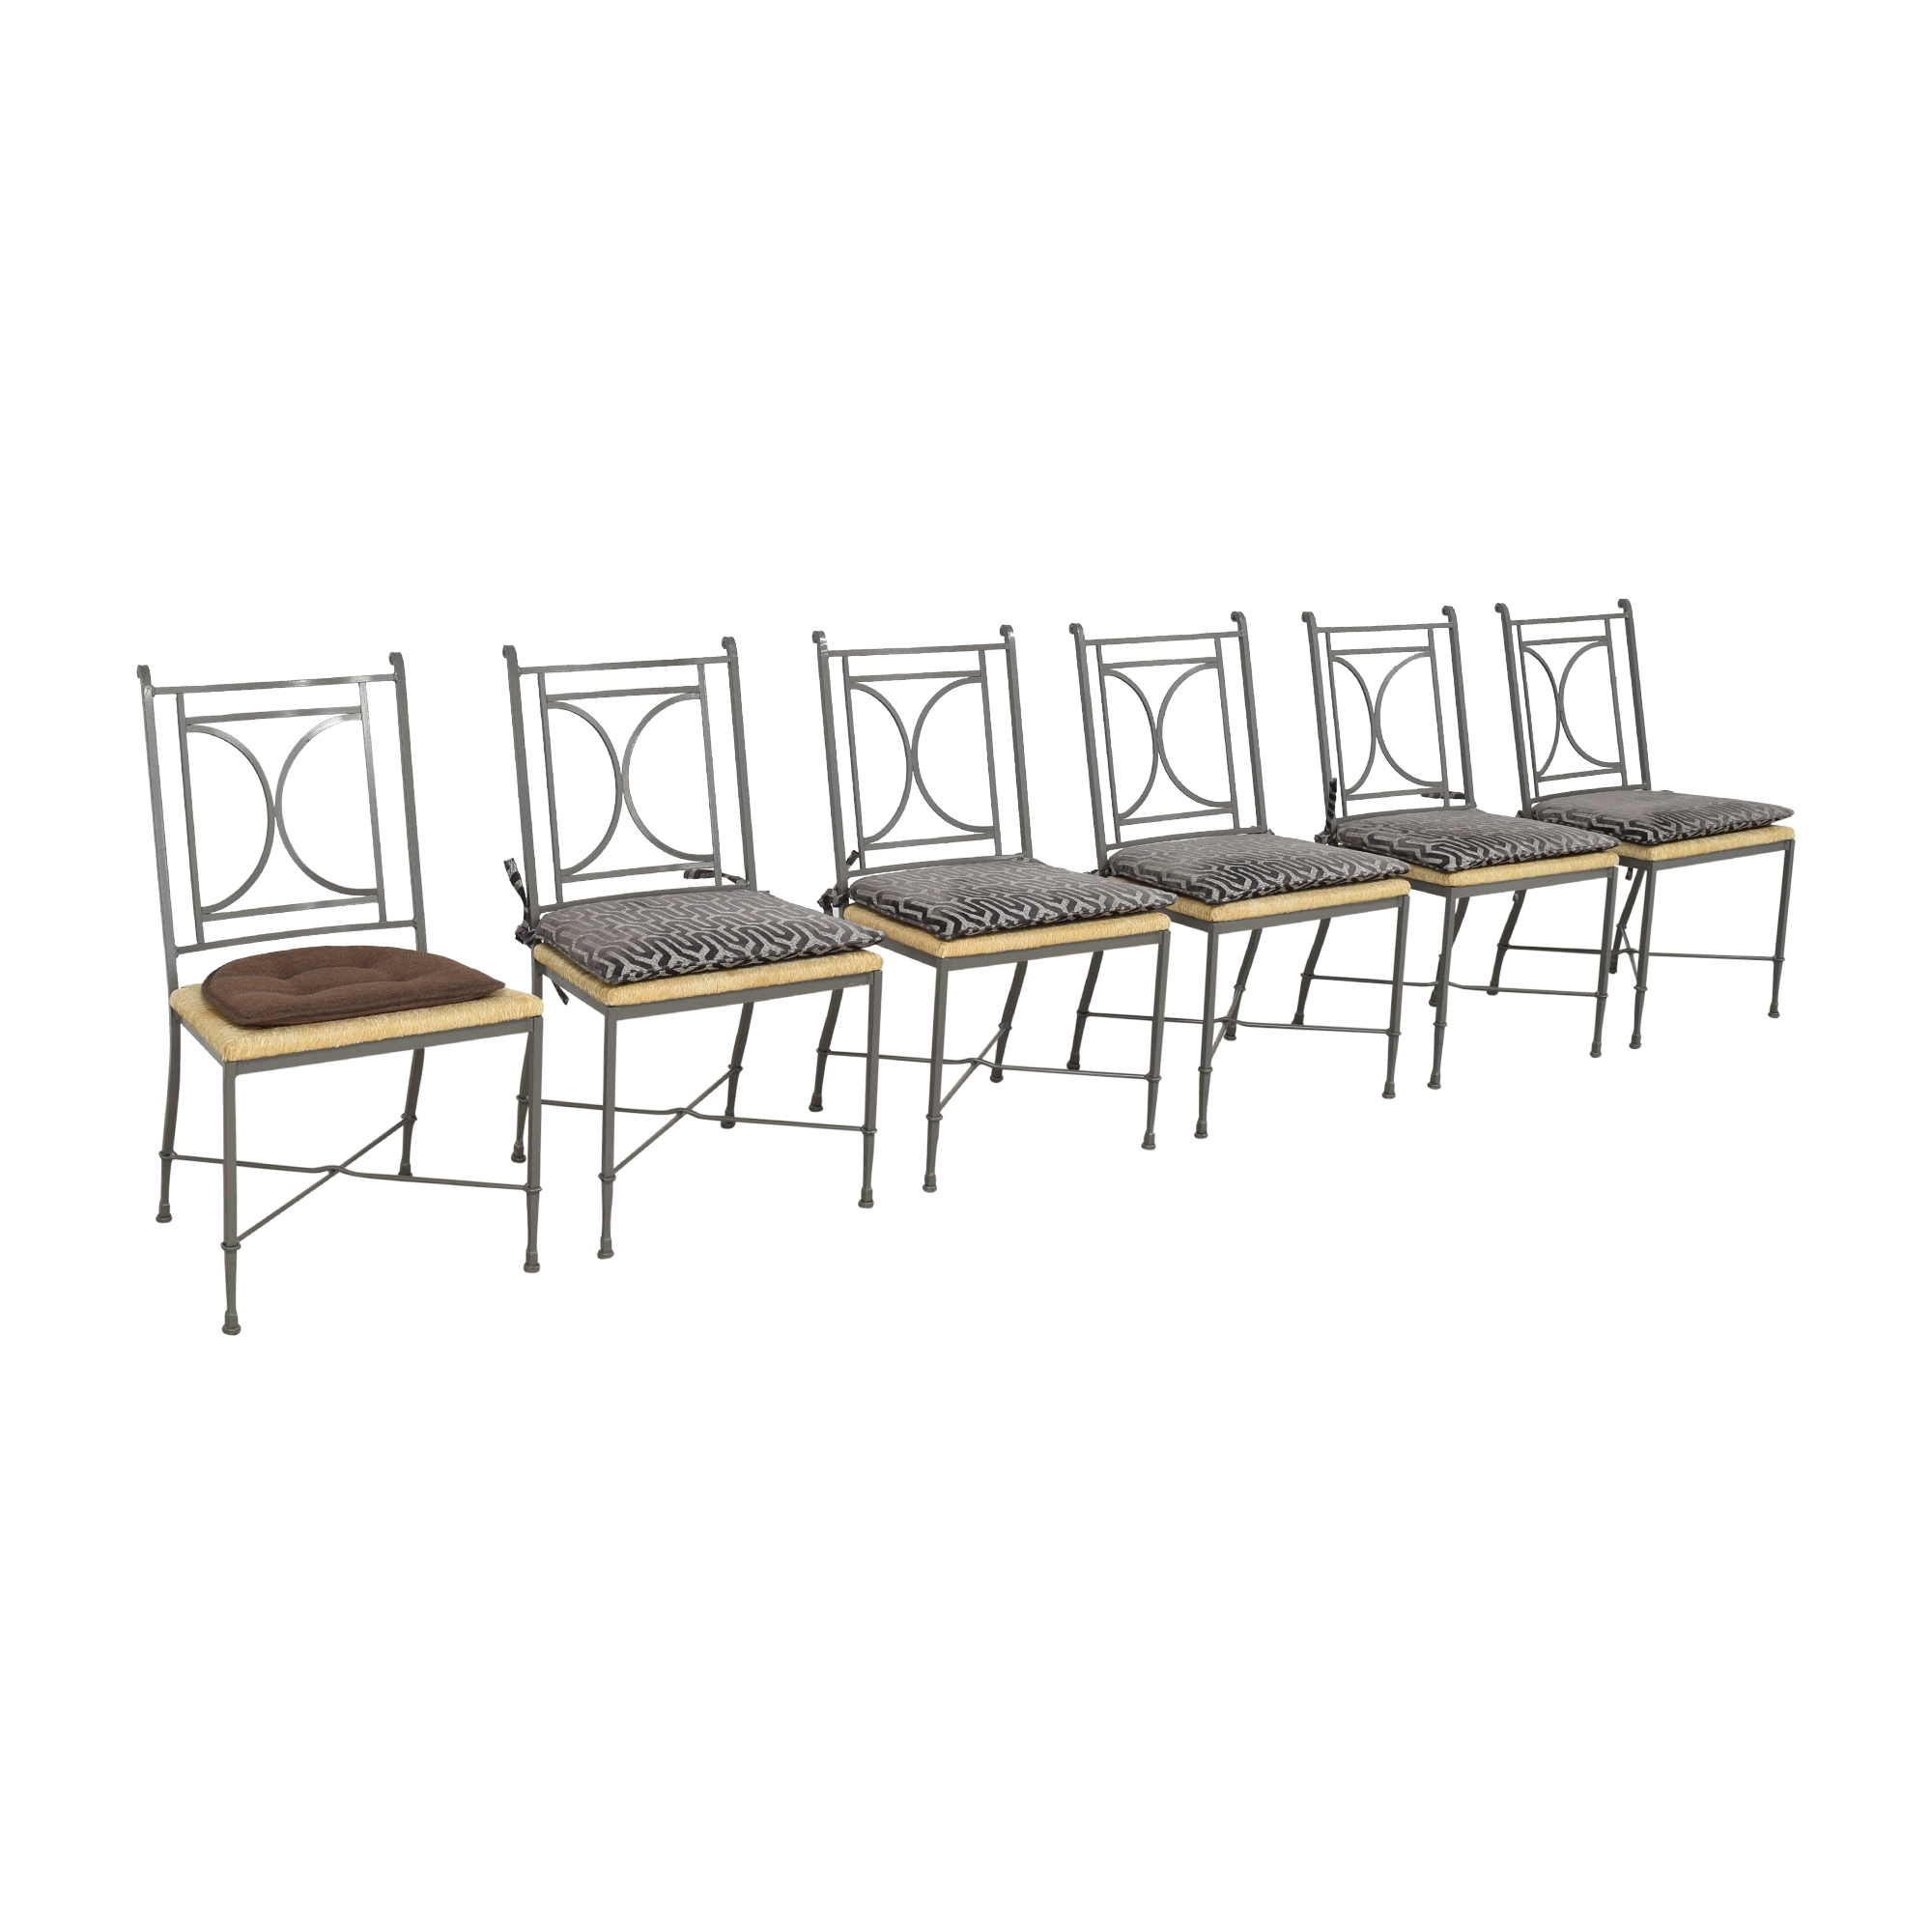 Charleston Forge Charleston Forge Woven Seat Dining Chairs with Cushions ct